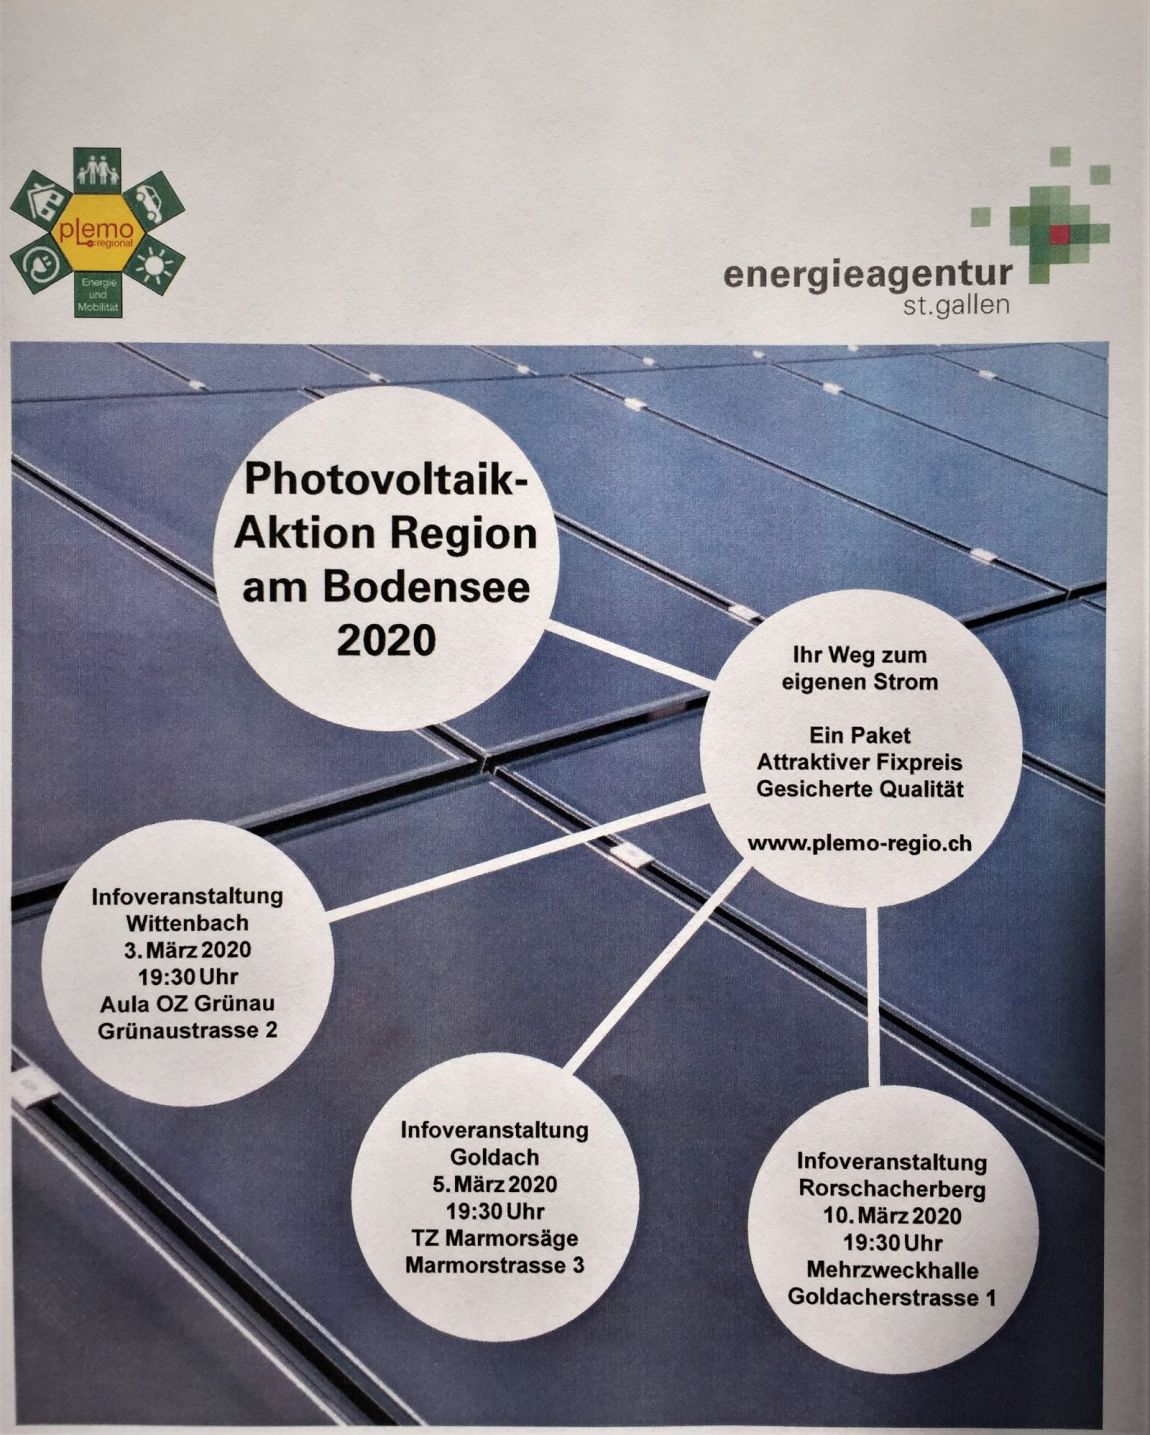 PV-Aktion Region am Bodensee 2020